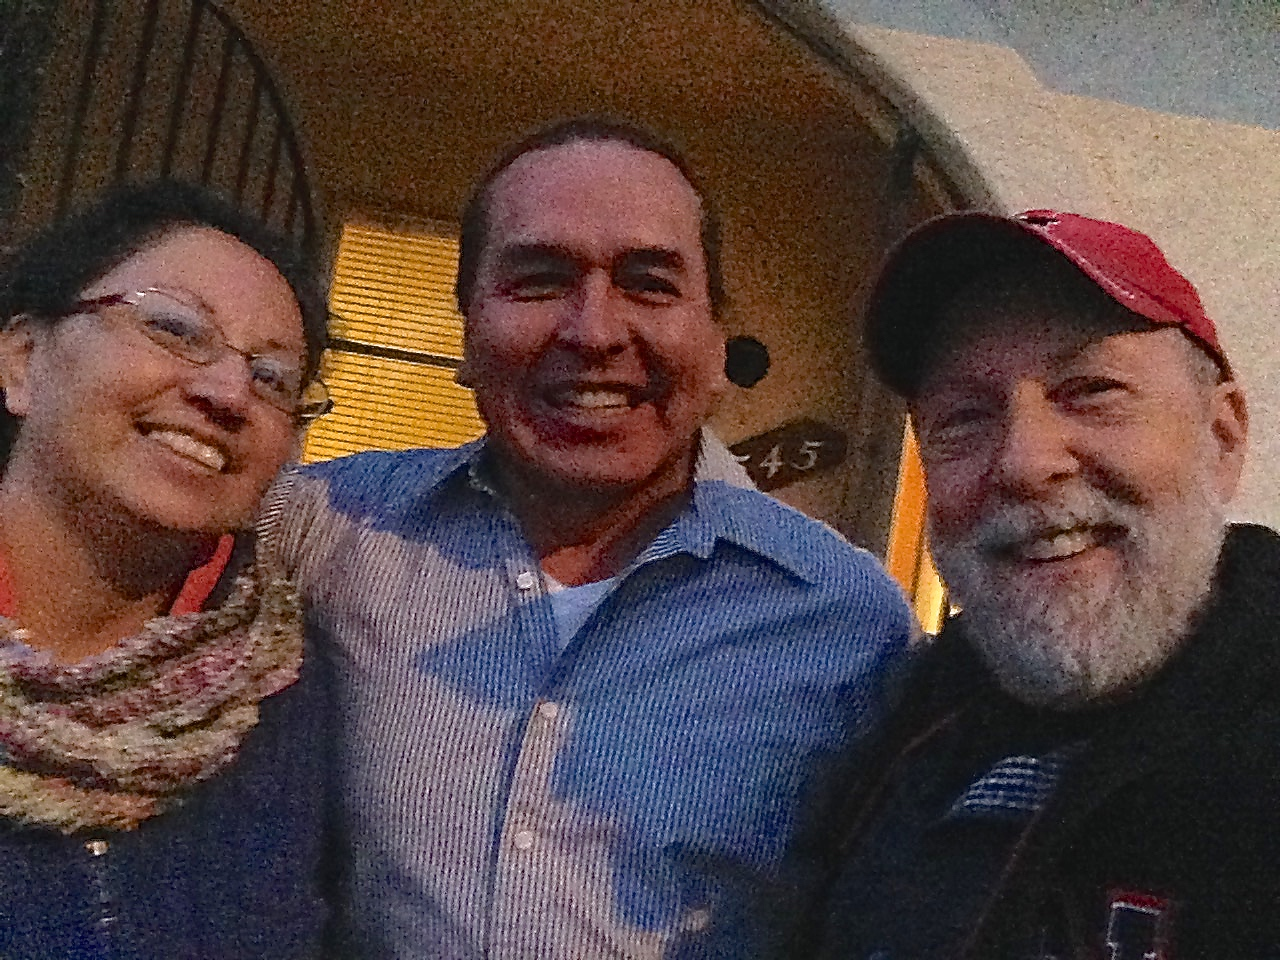 Caught up with Nathan and Veronica Enick from the Crow Rez but now live in Albuquerque, NM where they minister to the homeless.